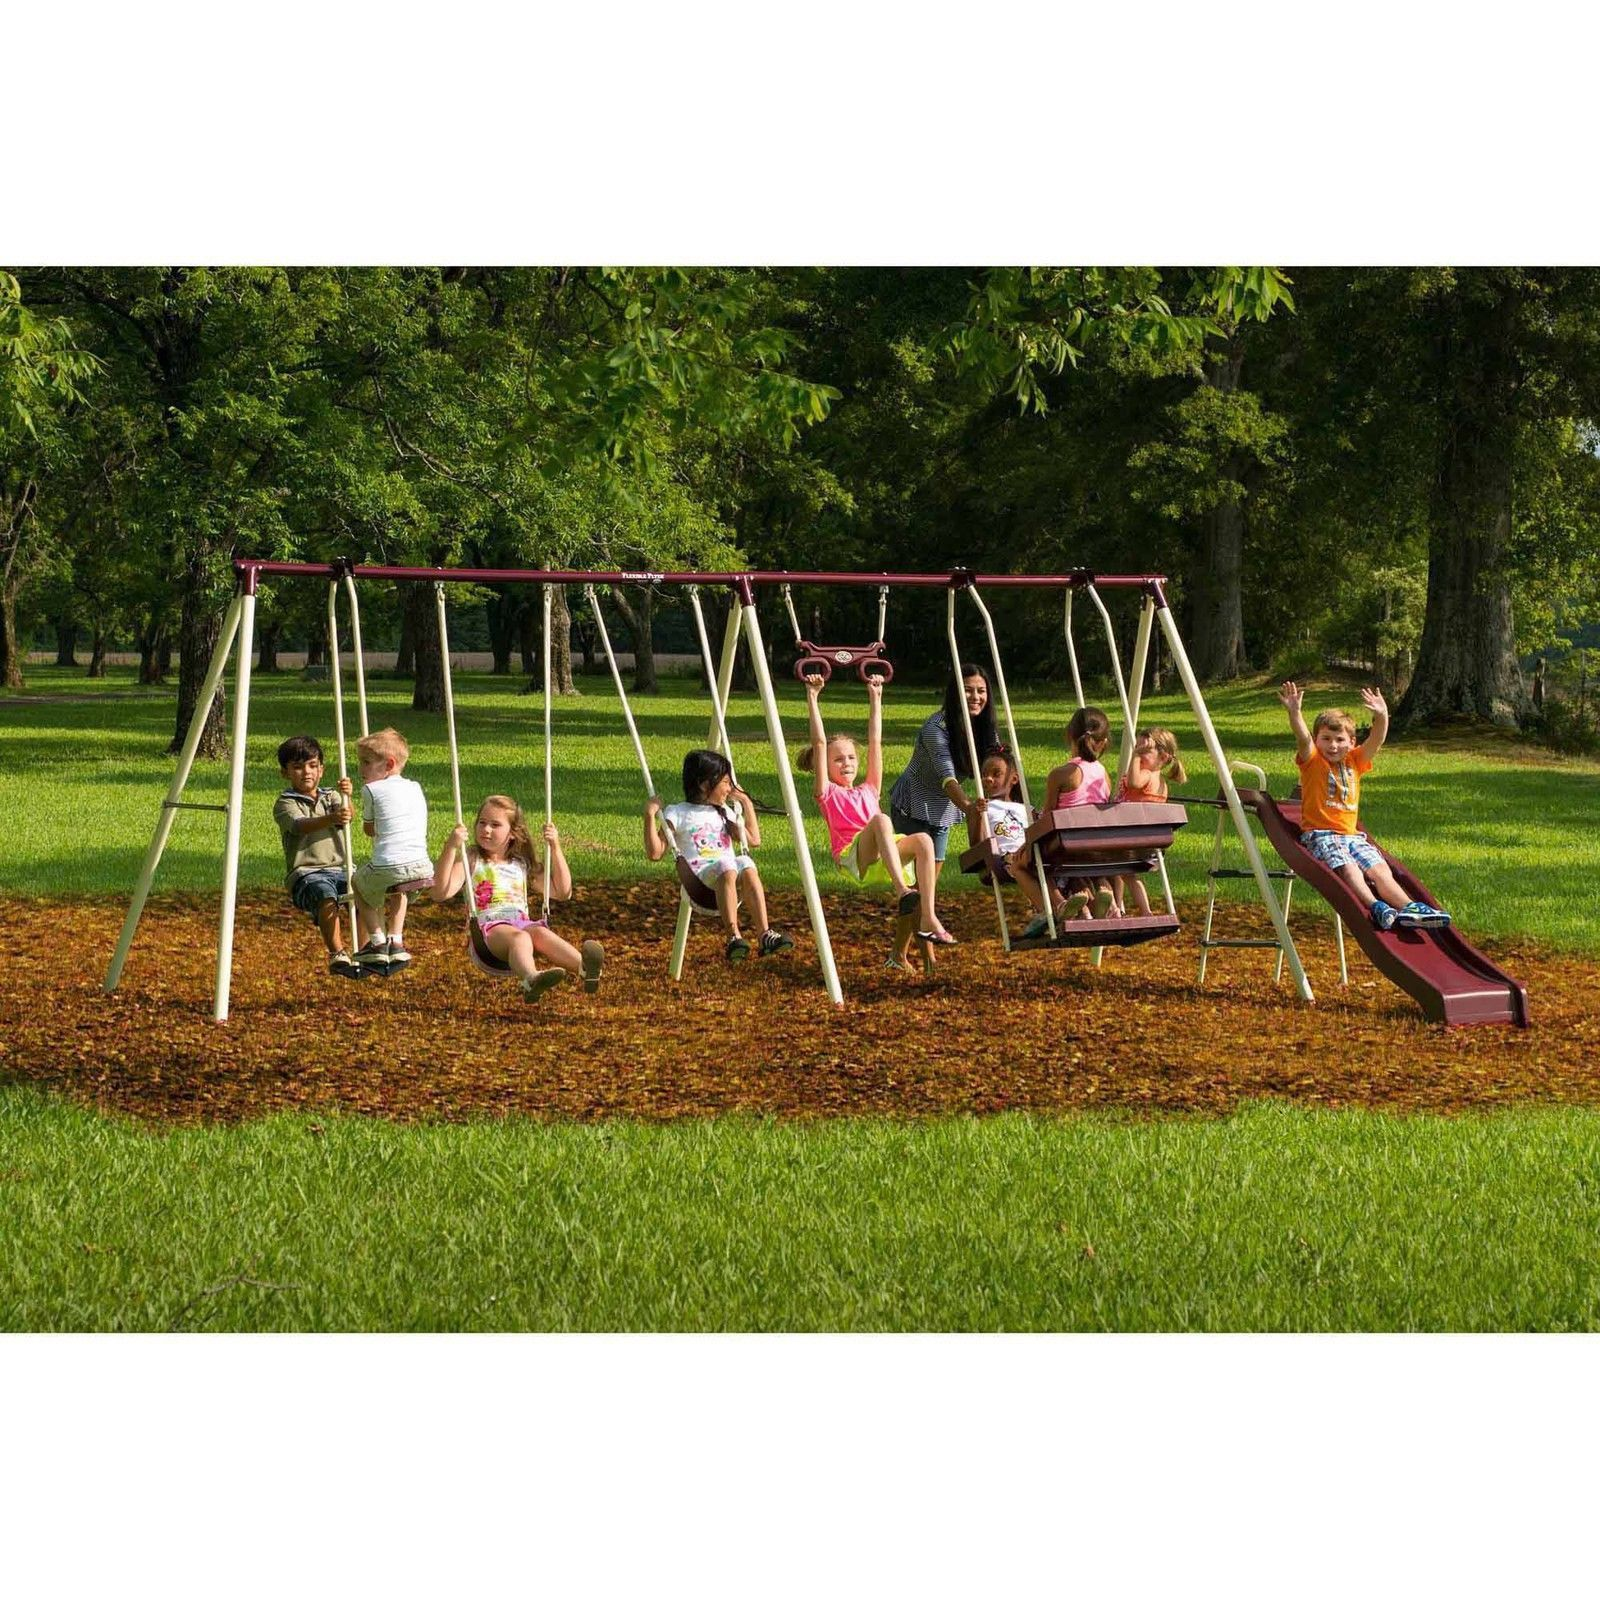 Outdoor Swing Playset Plans 6 Station Kids Metal Outside Glider